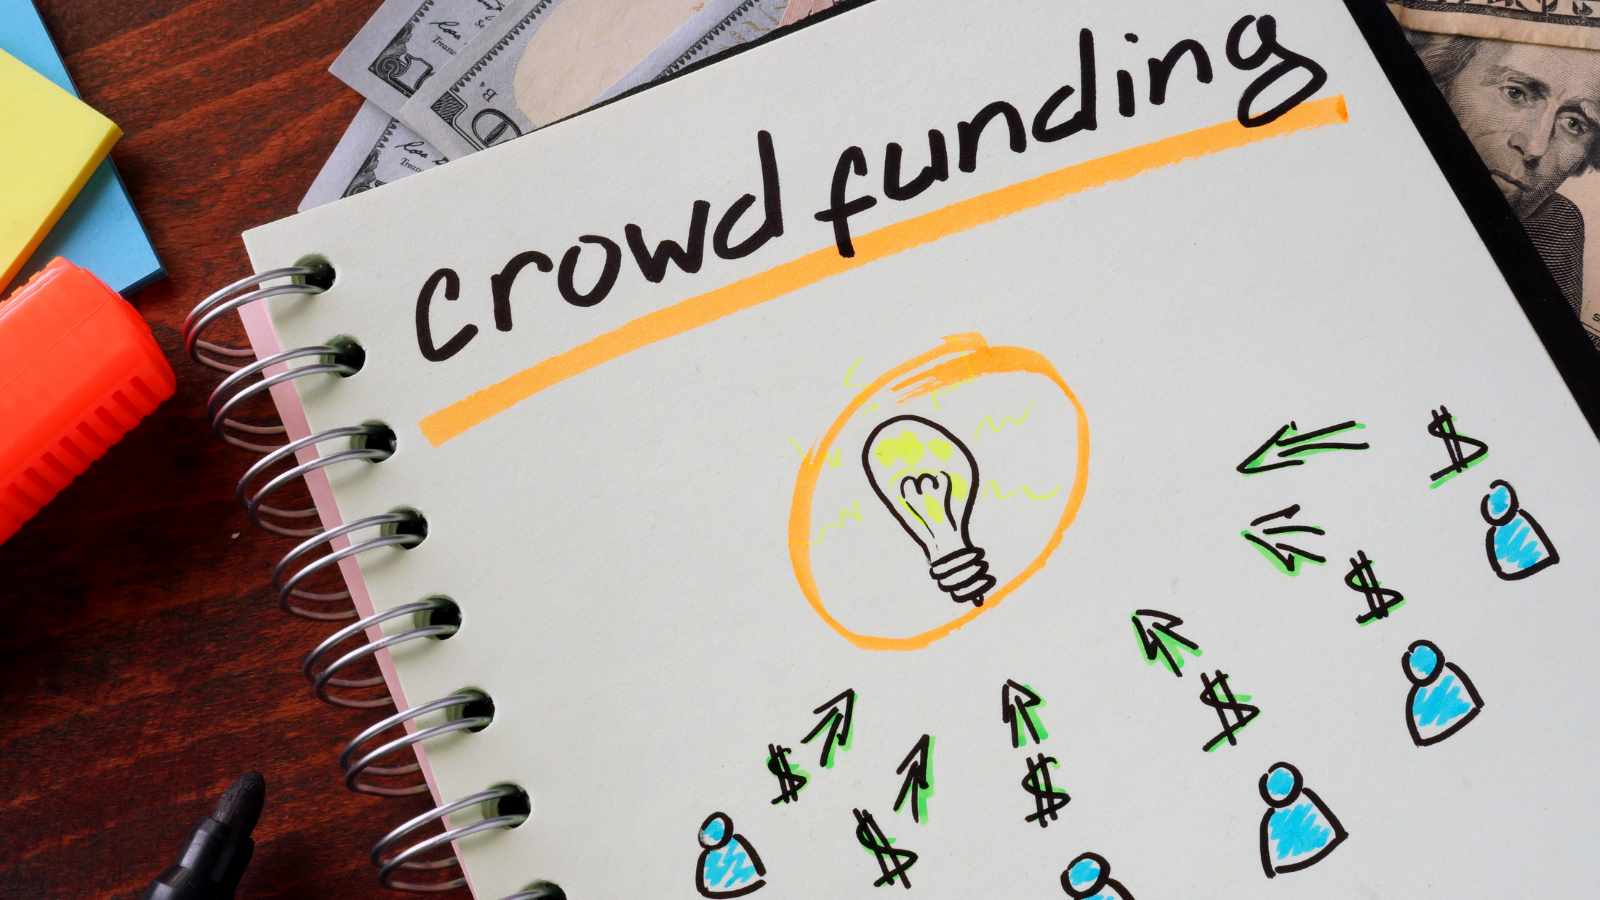 EU wide rules on crowdfunding is just one-step from reality under the ECR lead